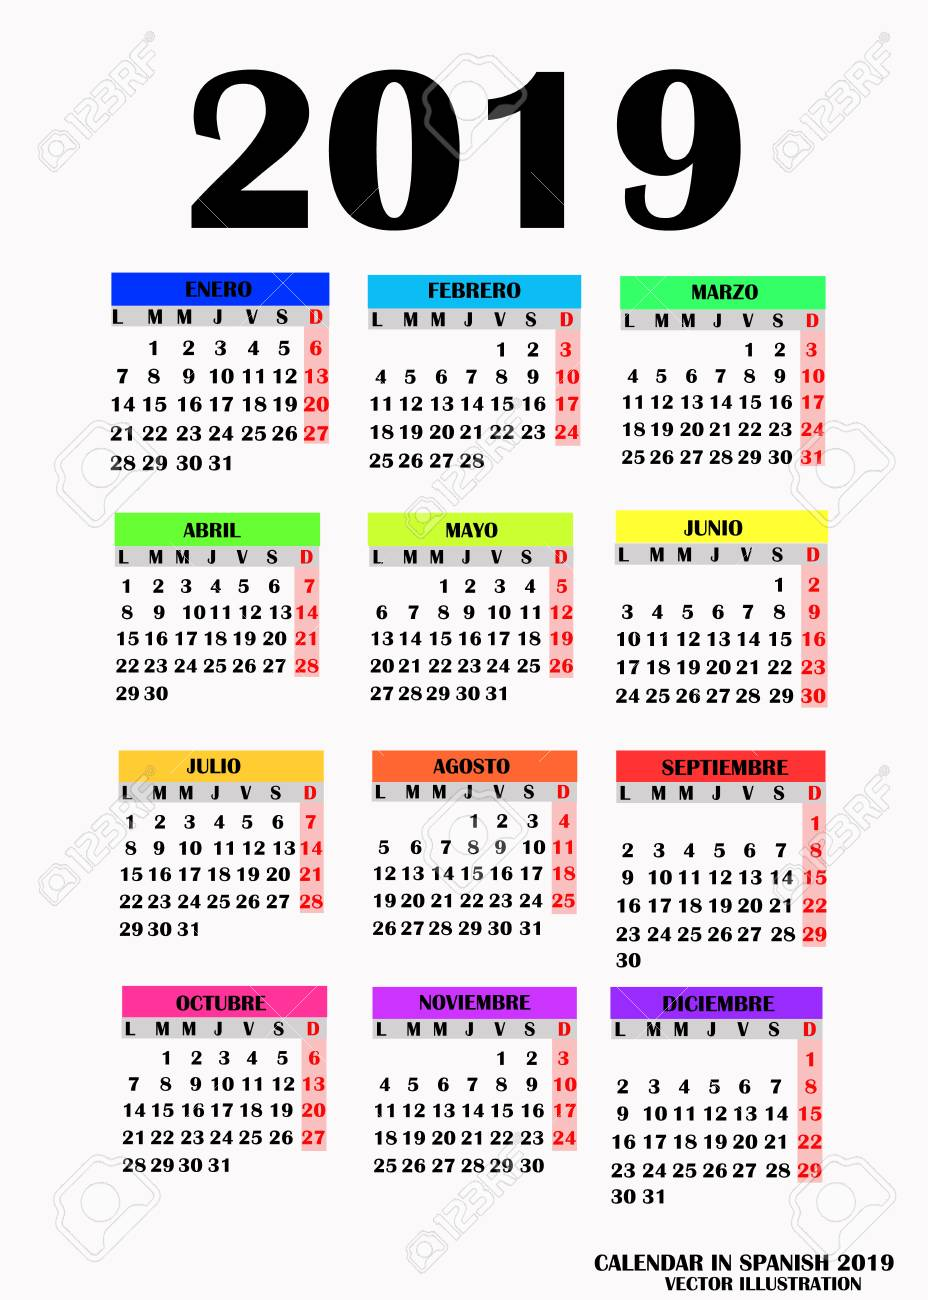 Calendario Julio 2019 Vector.Simple Design For Calendar 2019 Vector